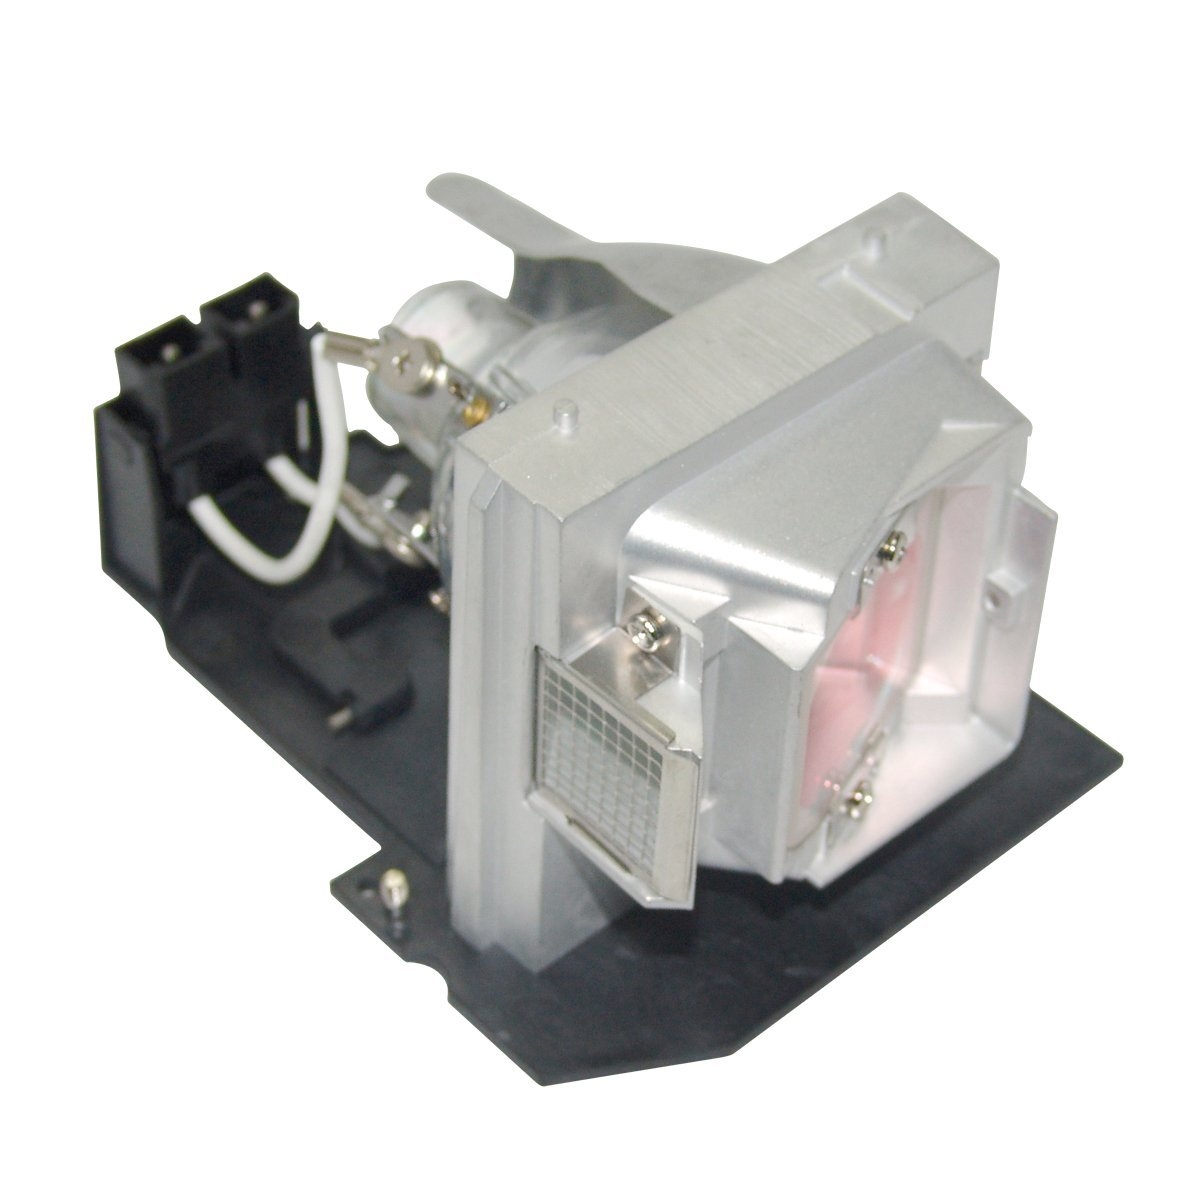 DELL Generic Complete Lamp for DELL 7609WU projector. Includes 1 year warranty.